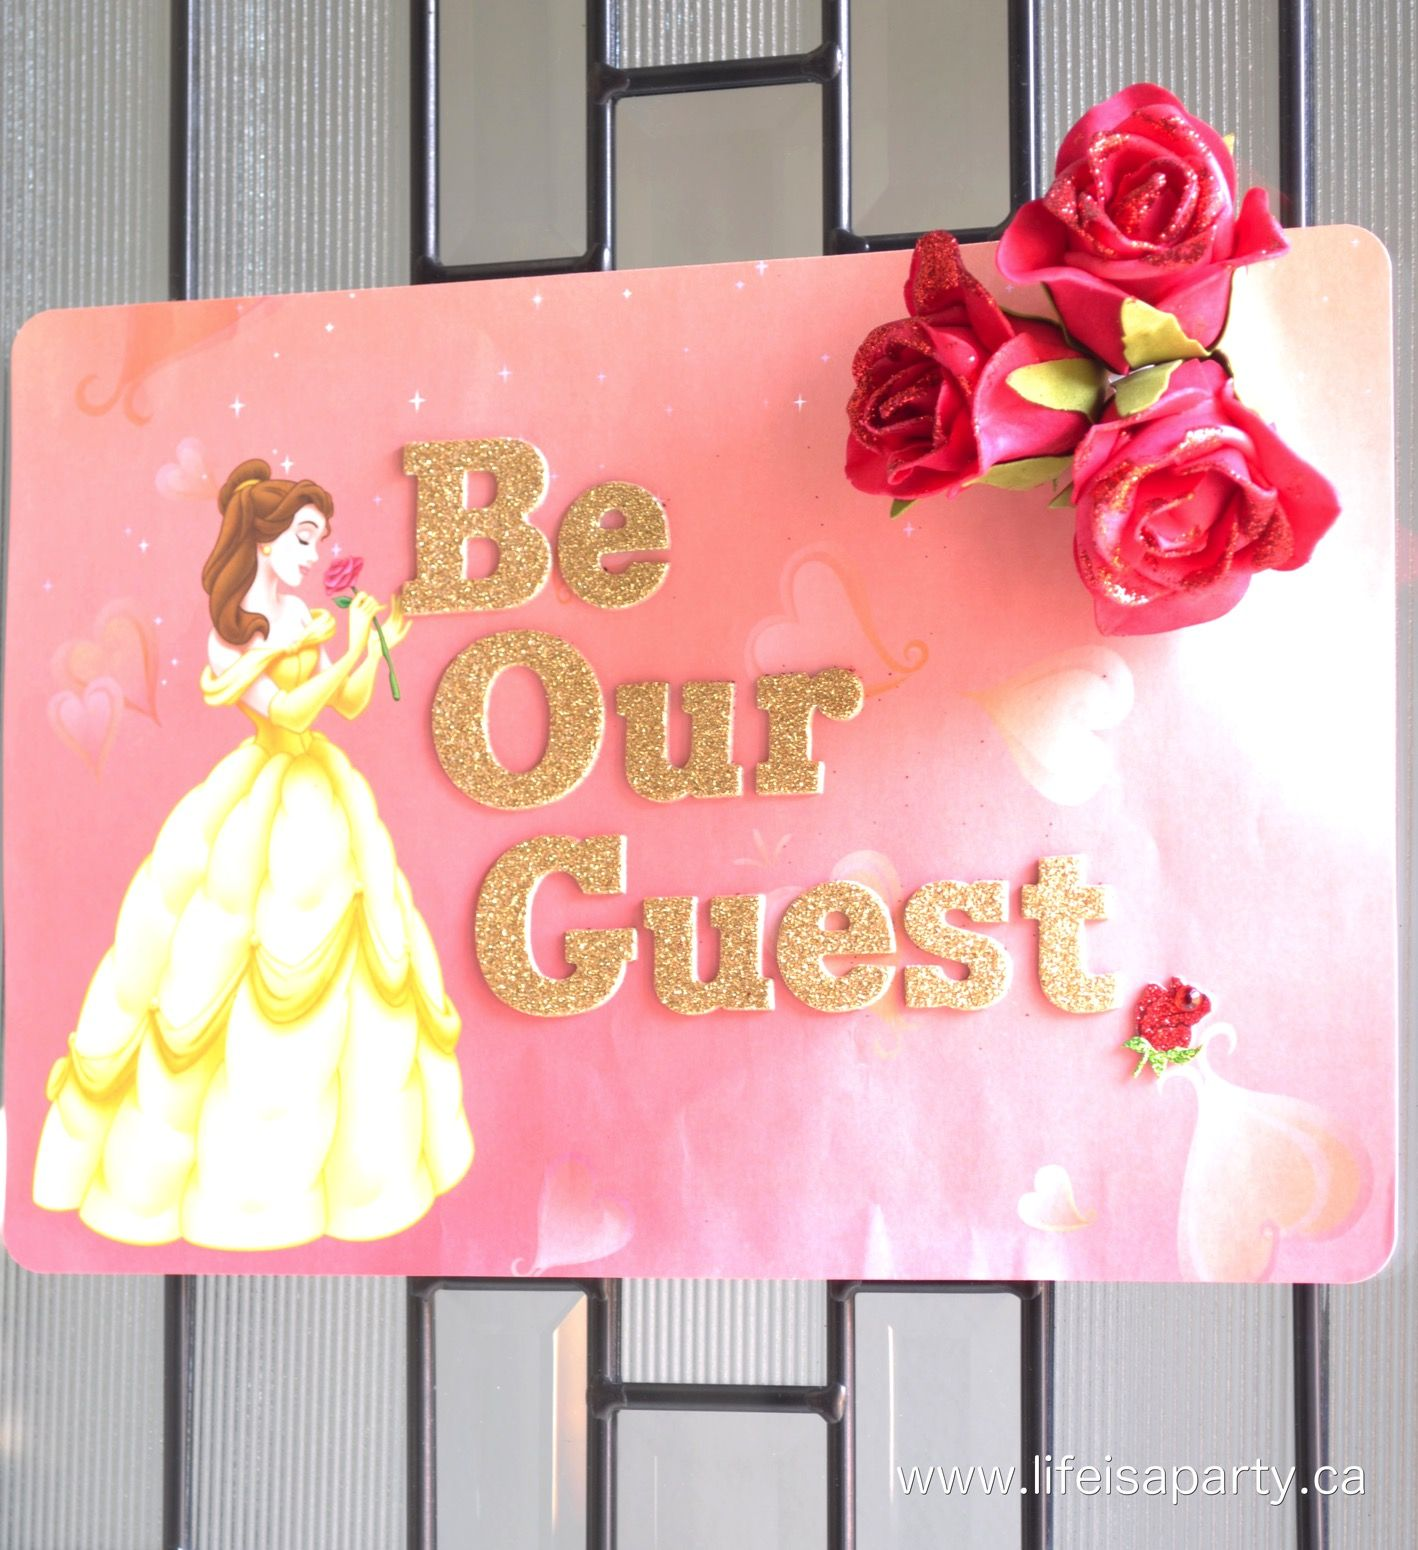 Simple Birthday Decorations At Home: Pin By Deborah Wright On Party Ideas